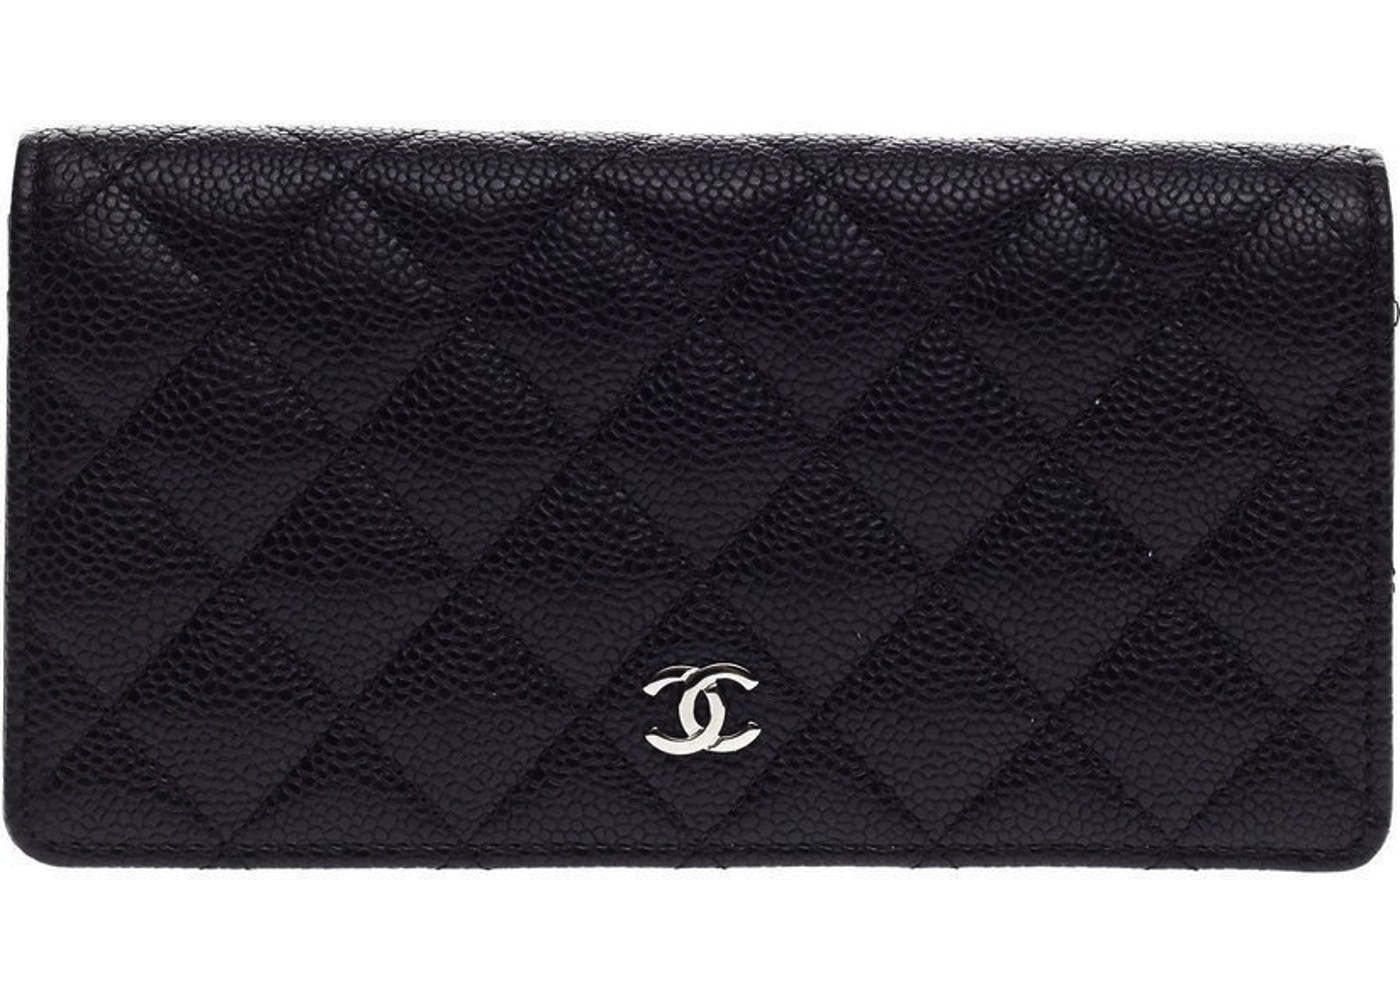 315f9ba7a67a0b Chanel L-Yen Wallet Quilted Black. Quilted Black